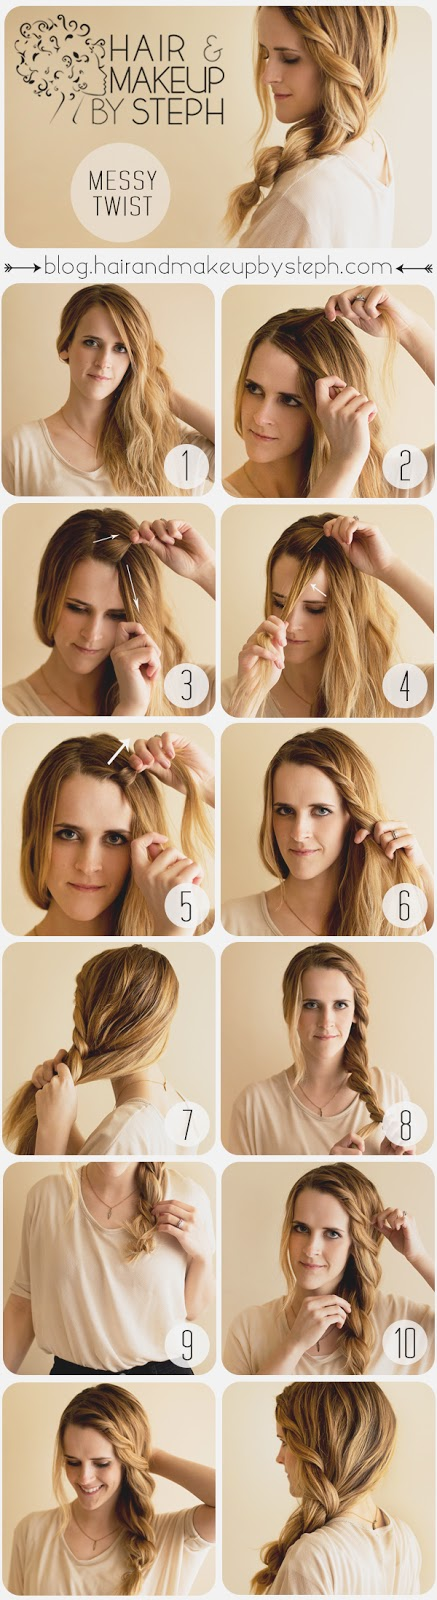 Hair Tutorial: How to do The Messy Twist at Home - Hairstyles Weekly